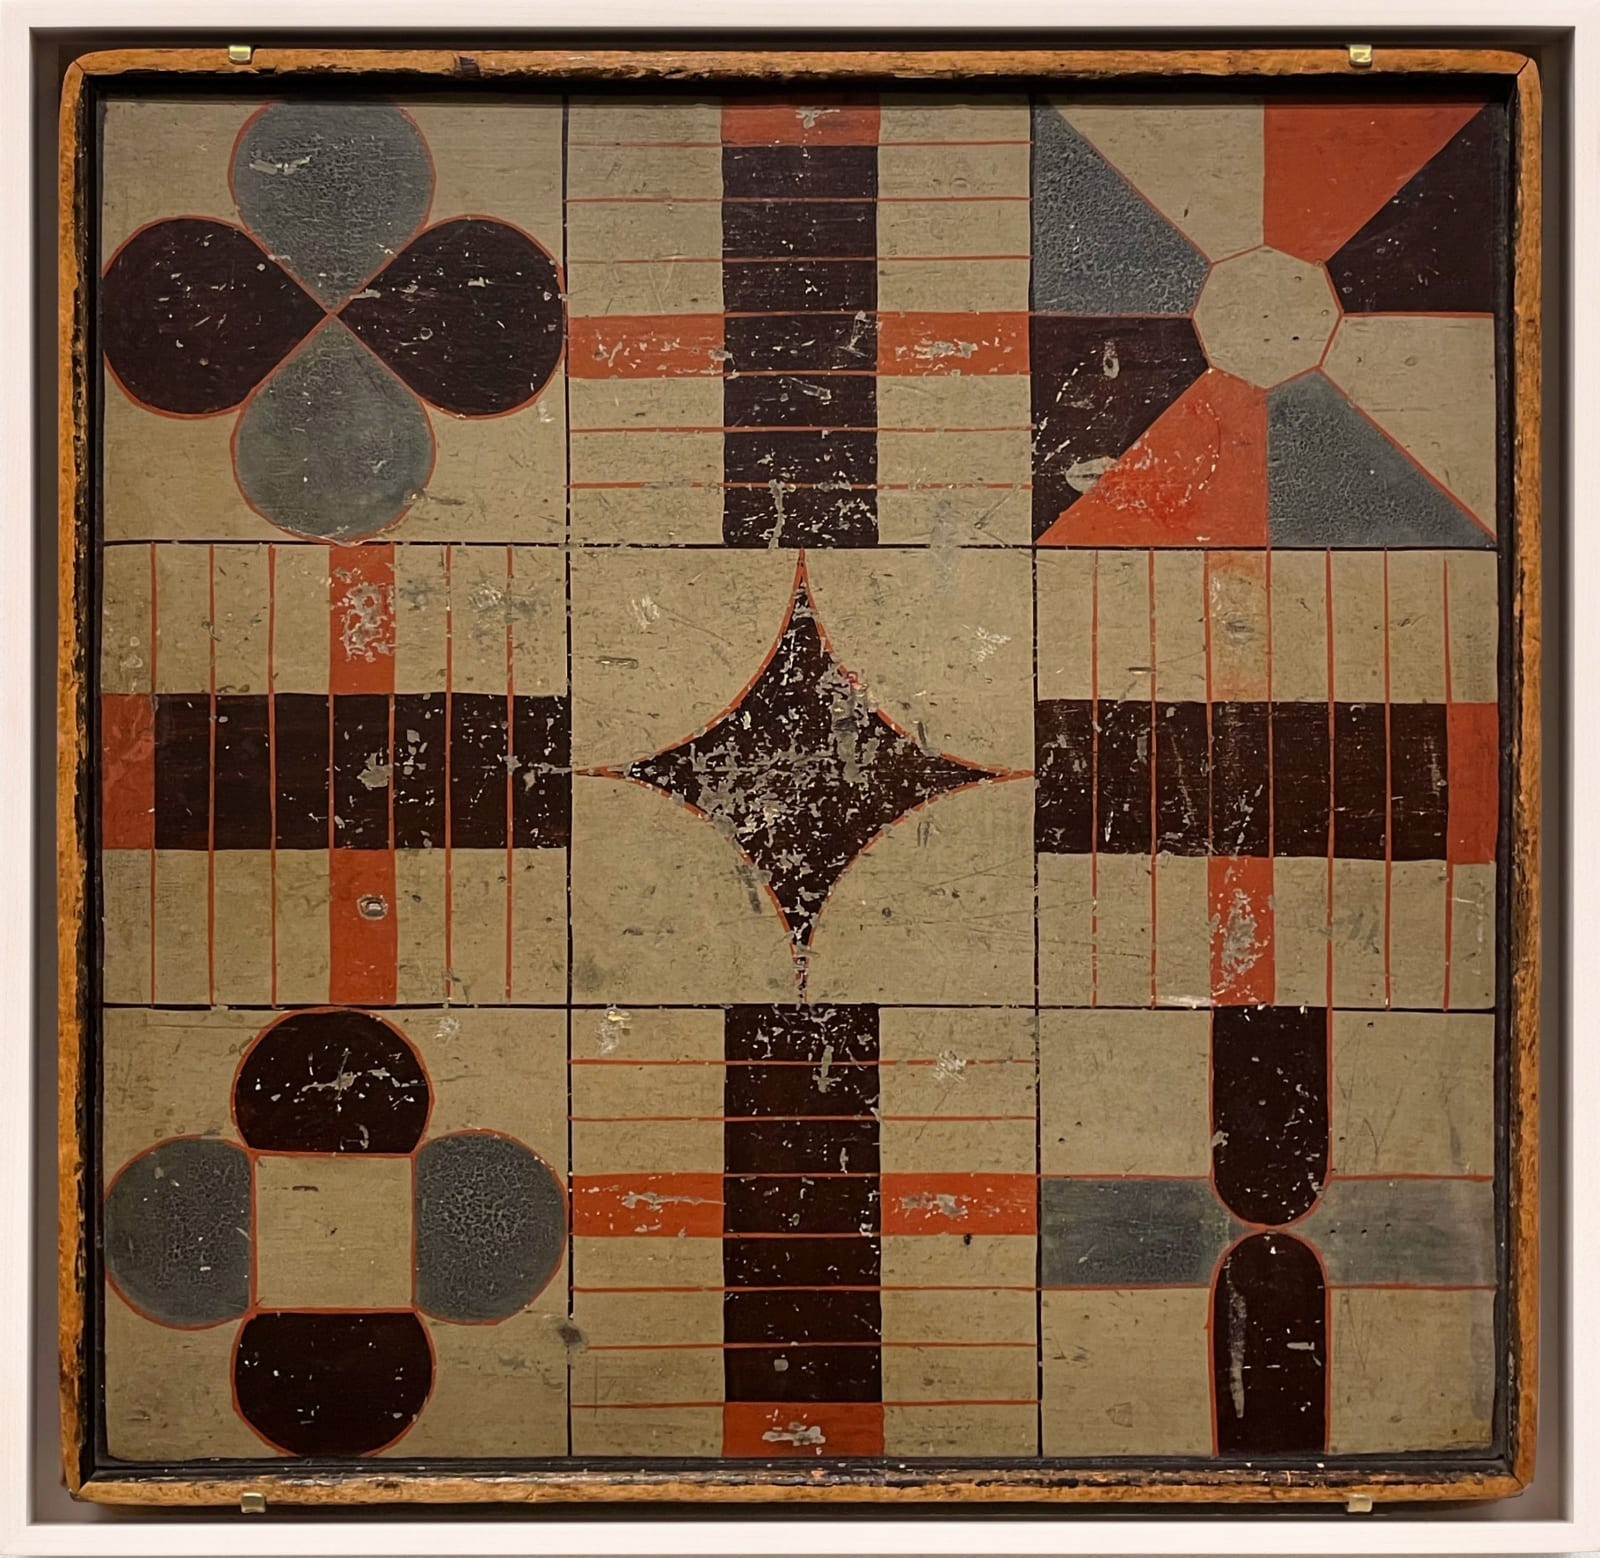 PARCHEESI GAME BOARD, C. 1880-1890 Paint on wood panel 18 x 18 1/2 in. 45.7 x 47 cm. (AU 293)